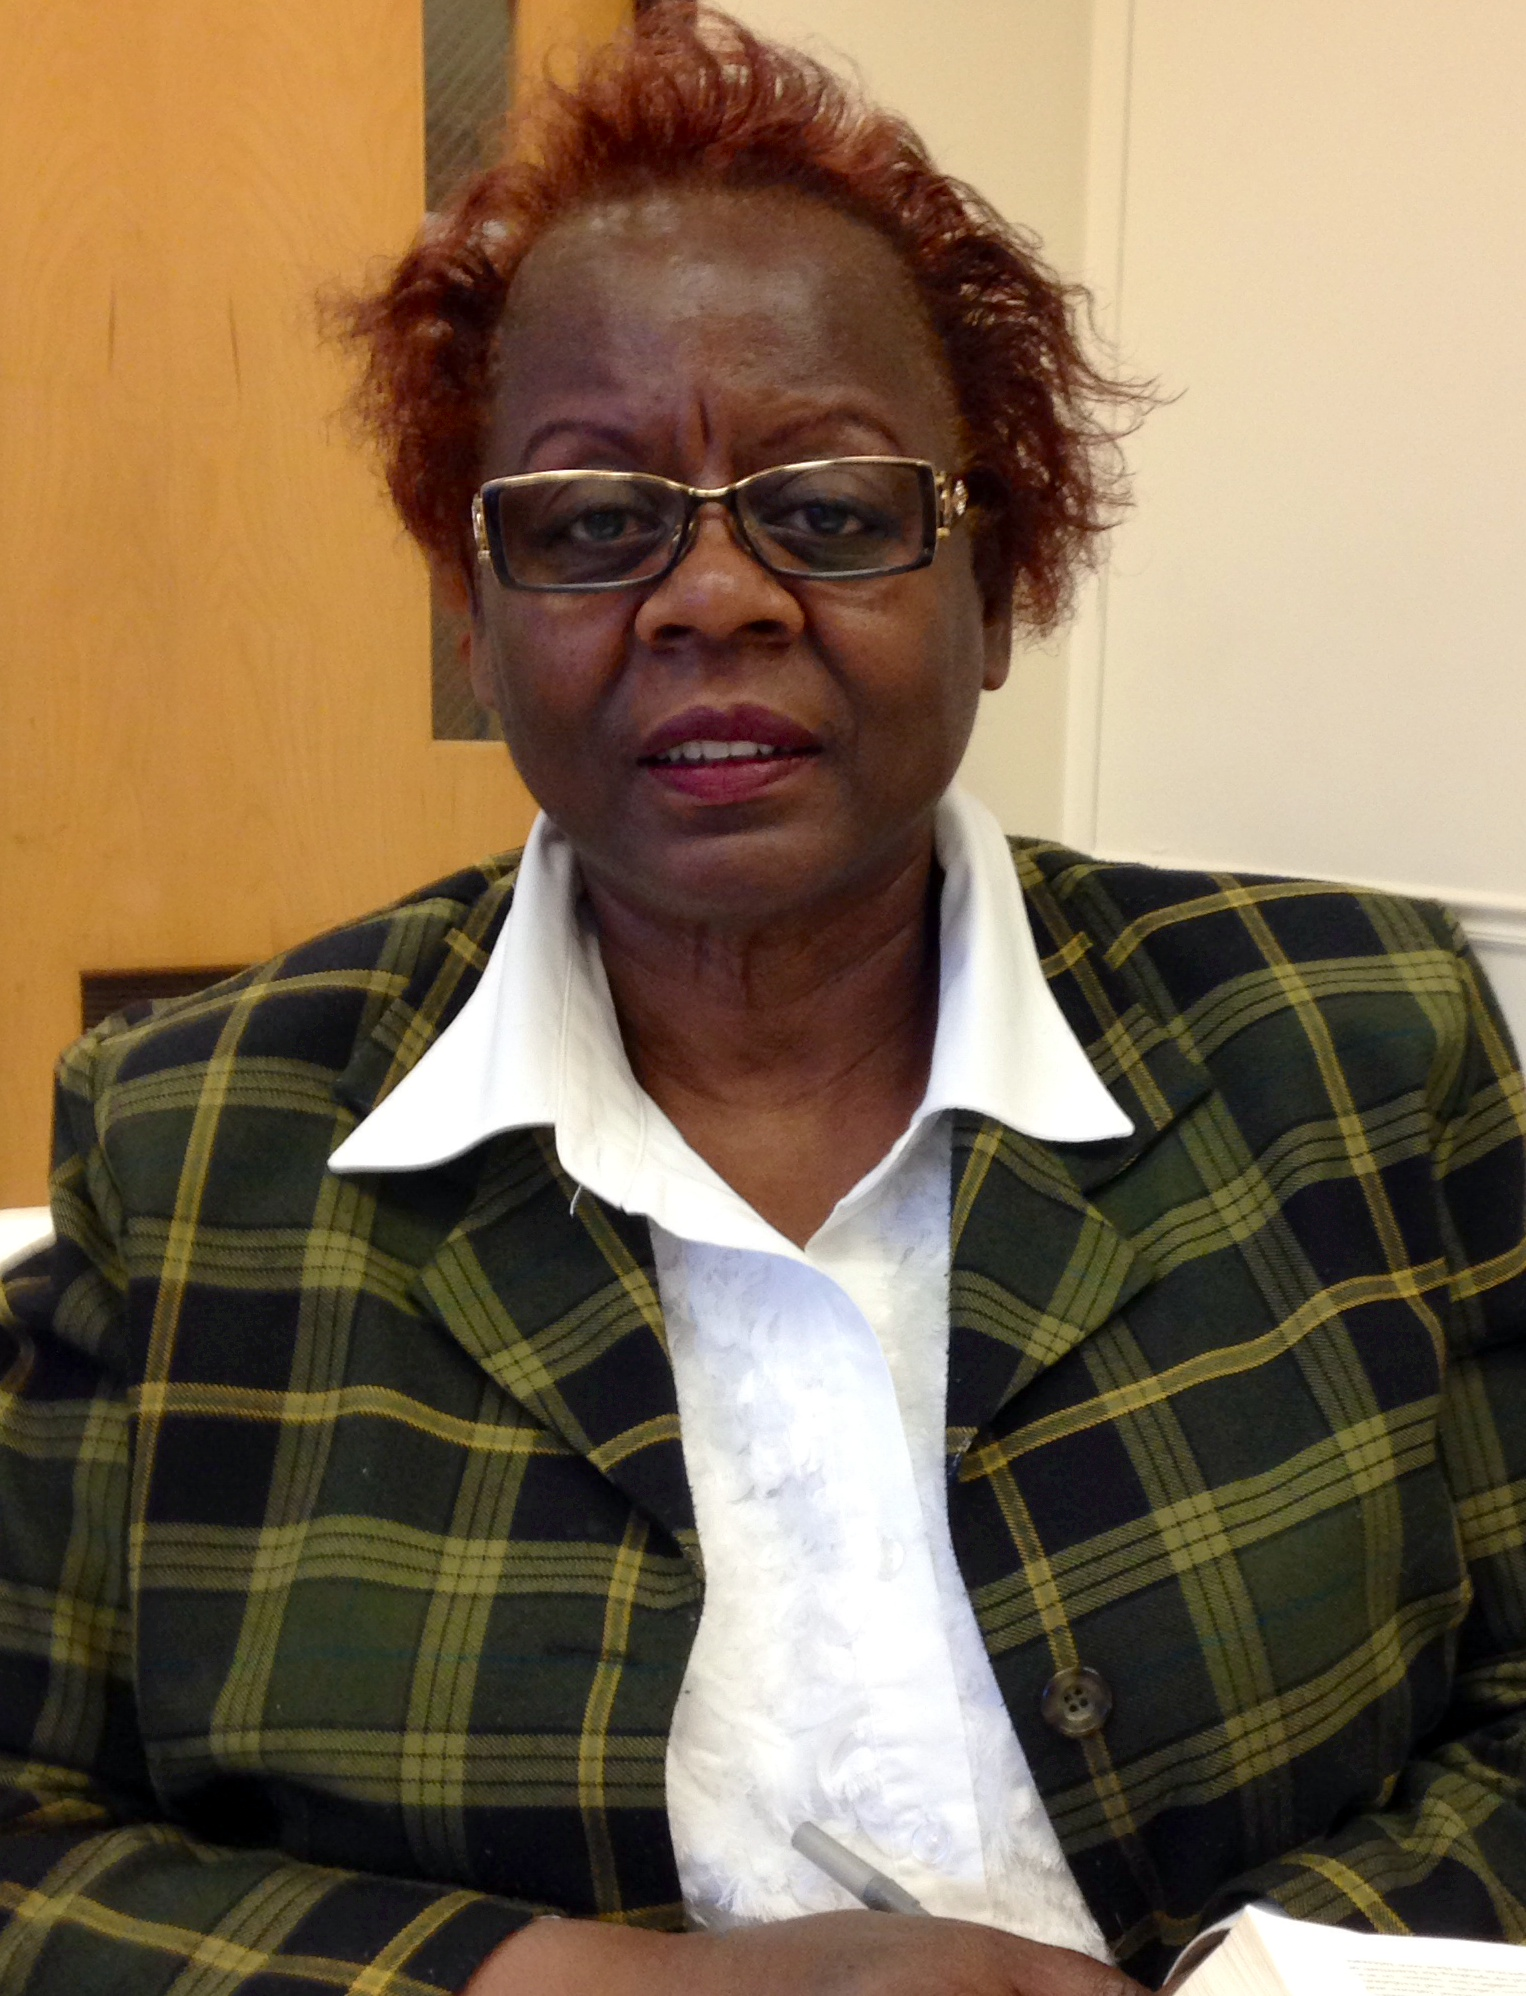 Photo of Marjorie Felder Taylor, African American middle-aged woman with glasses, short hair, in business suit.